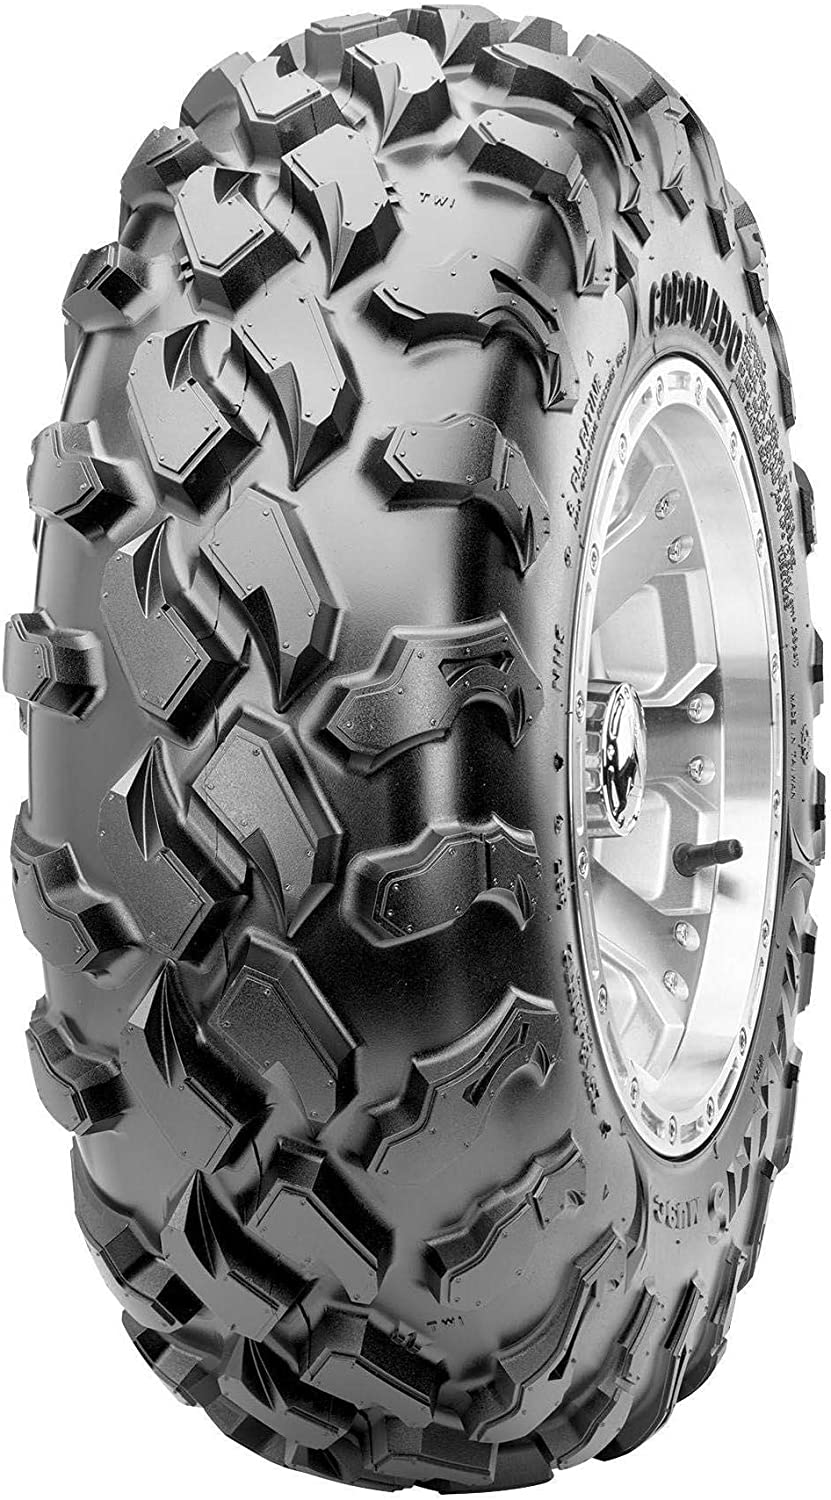 Tire Application: Intermediate Position: Front Tire Ply: 8 TM00854100 26x9R14 Rim Size: 14 Maxxis MU9C Coronado Front Tire Tire Construction: Radial Tire Type: ATV//UTV Tire Size: 26x9x14